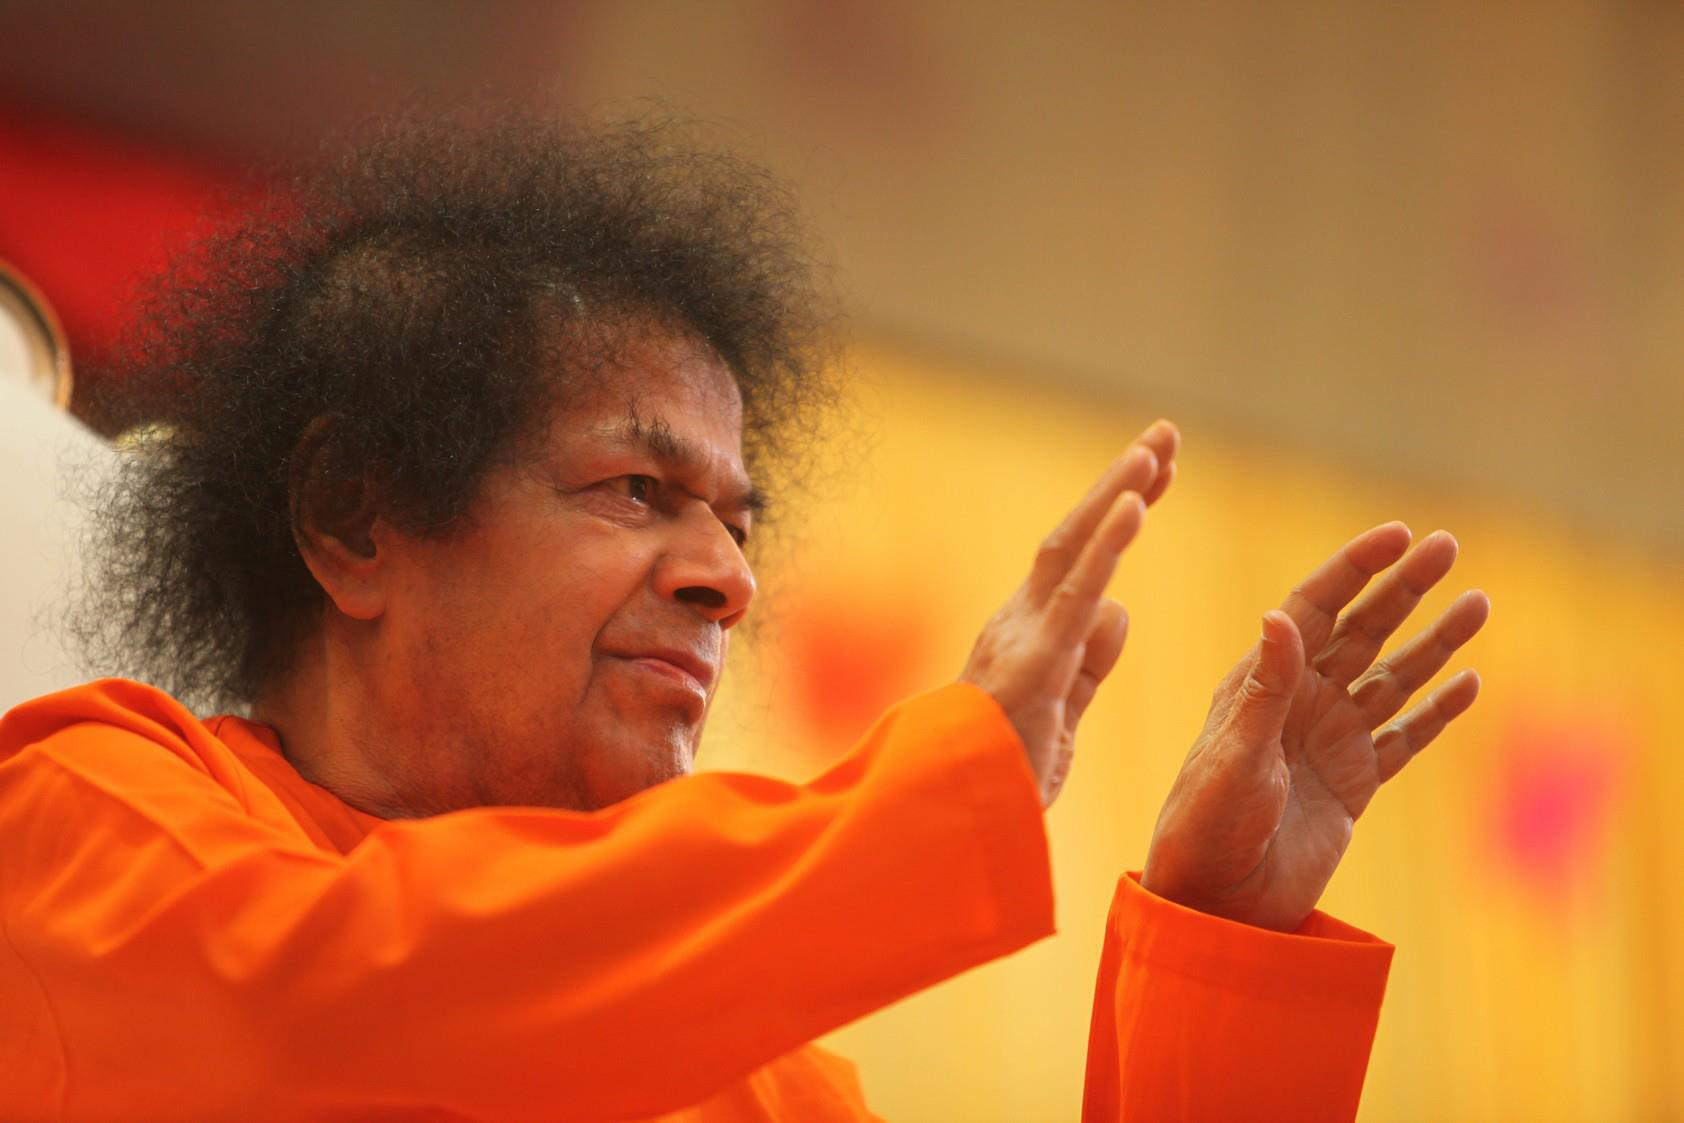 Sri sathya sai baba sai baba of india s weblog